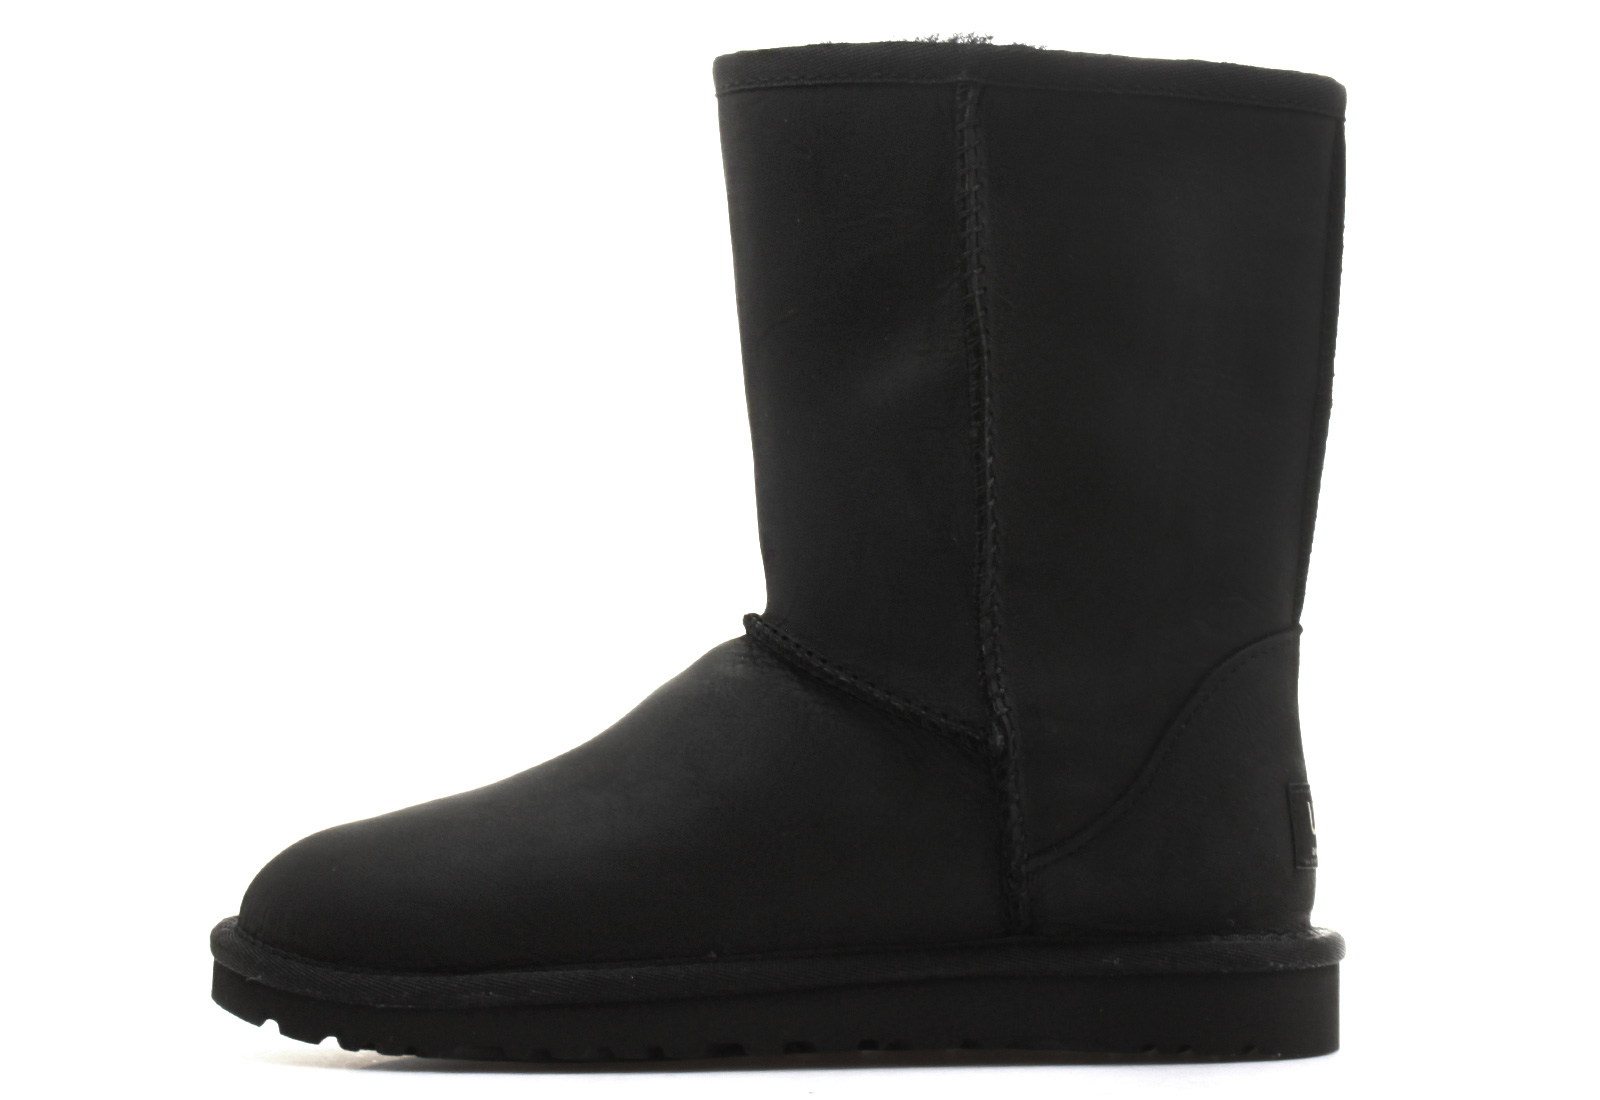 35f06d9ba67 Ugg Classic Short Leather Ankle Boots - cheap watches mgc-gas.com